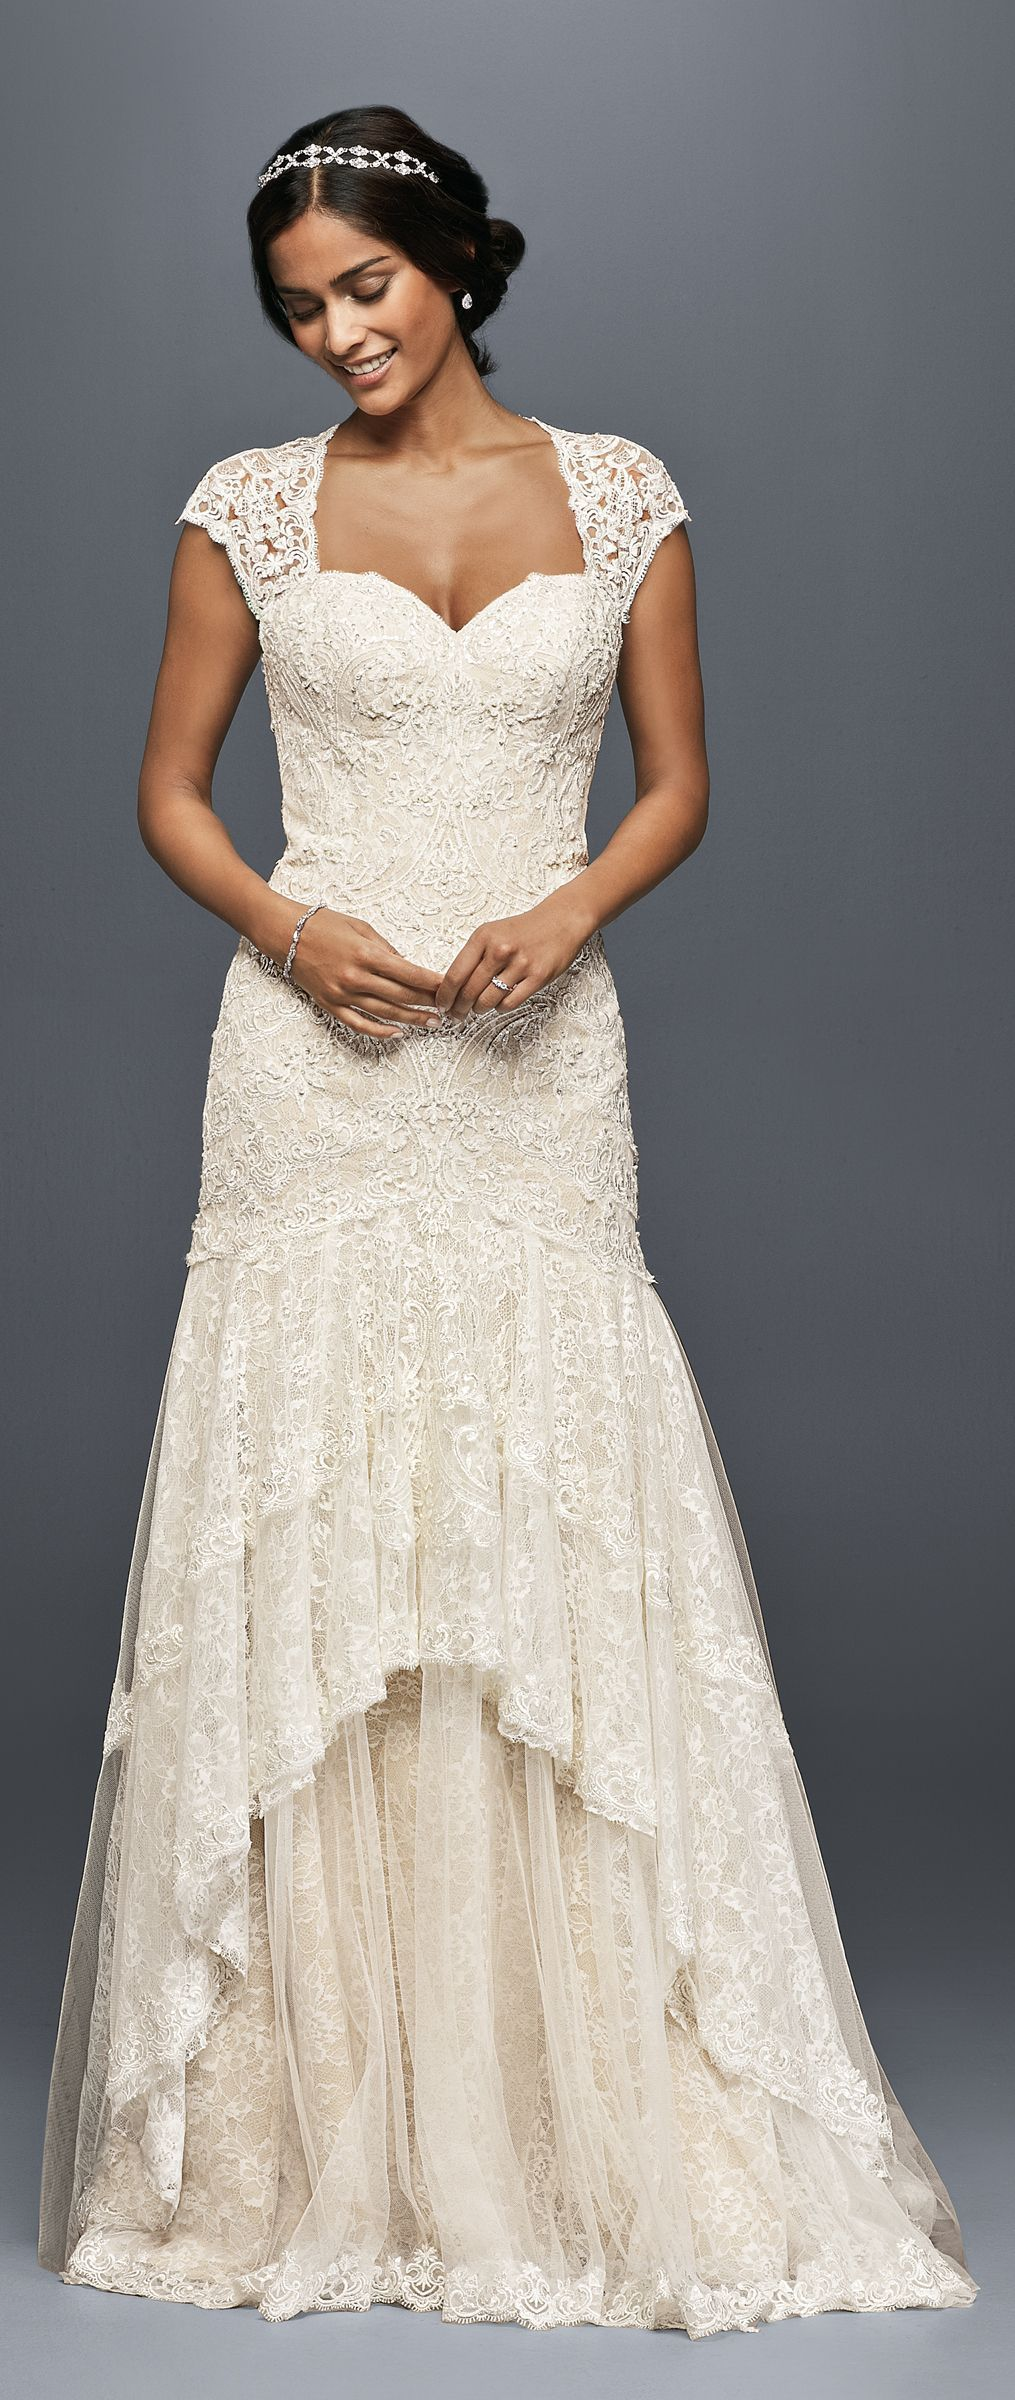 Tiered lace mermaid wedding dress with beading davidus bridal